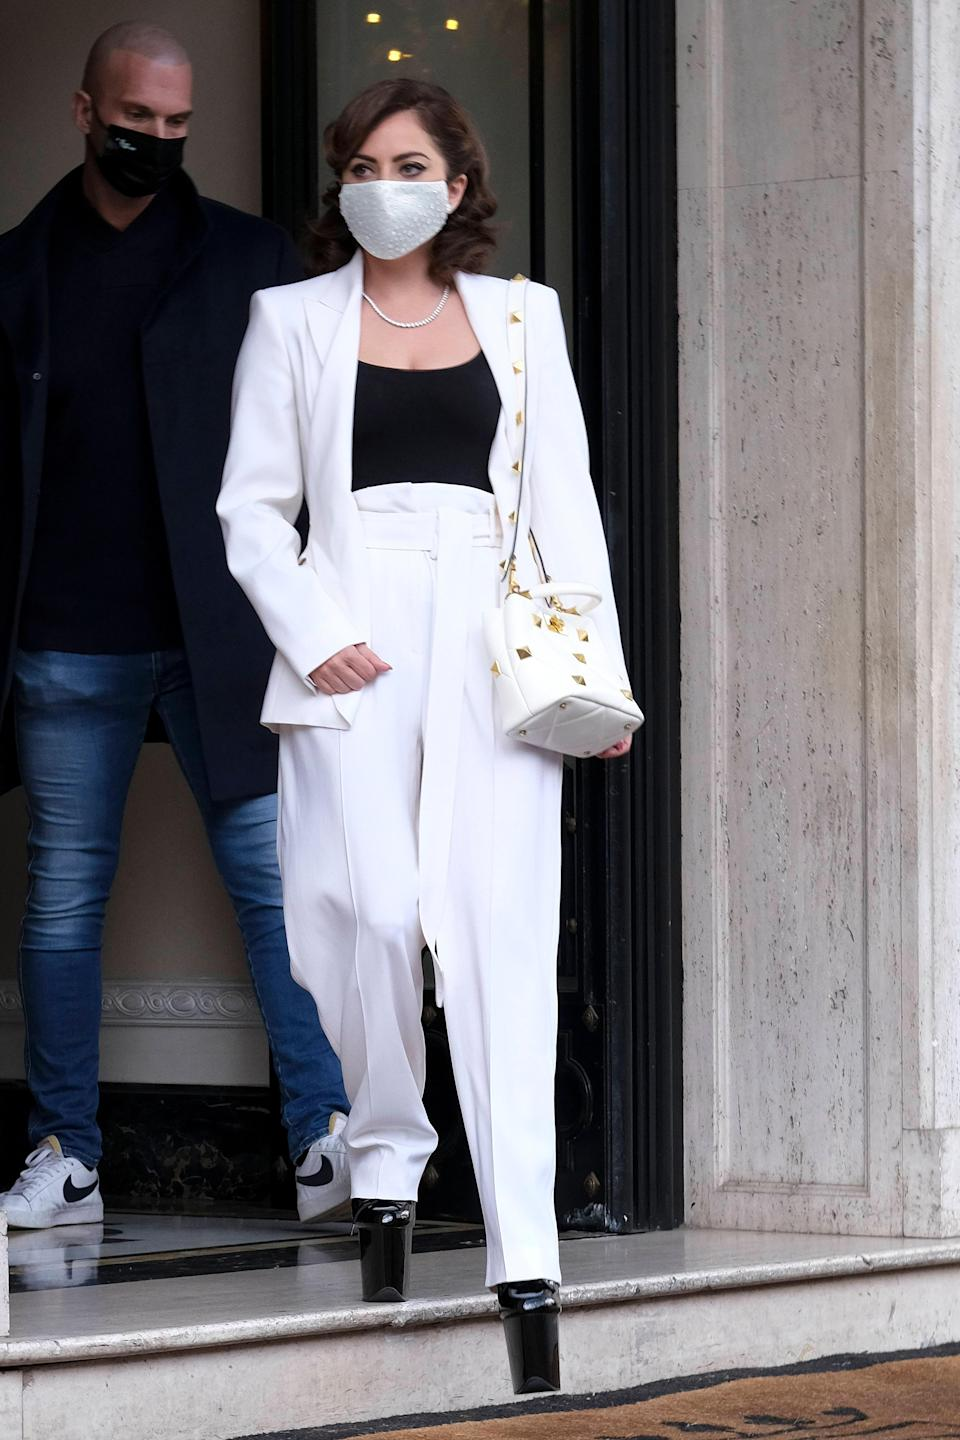 Strutting through Rome while filming her latest movie, it's no surprise Gaga is stunting on Italians like only she can. This outfit might seem normcore from afar but once you see her larger-than-life platforms, you can't unsee them.